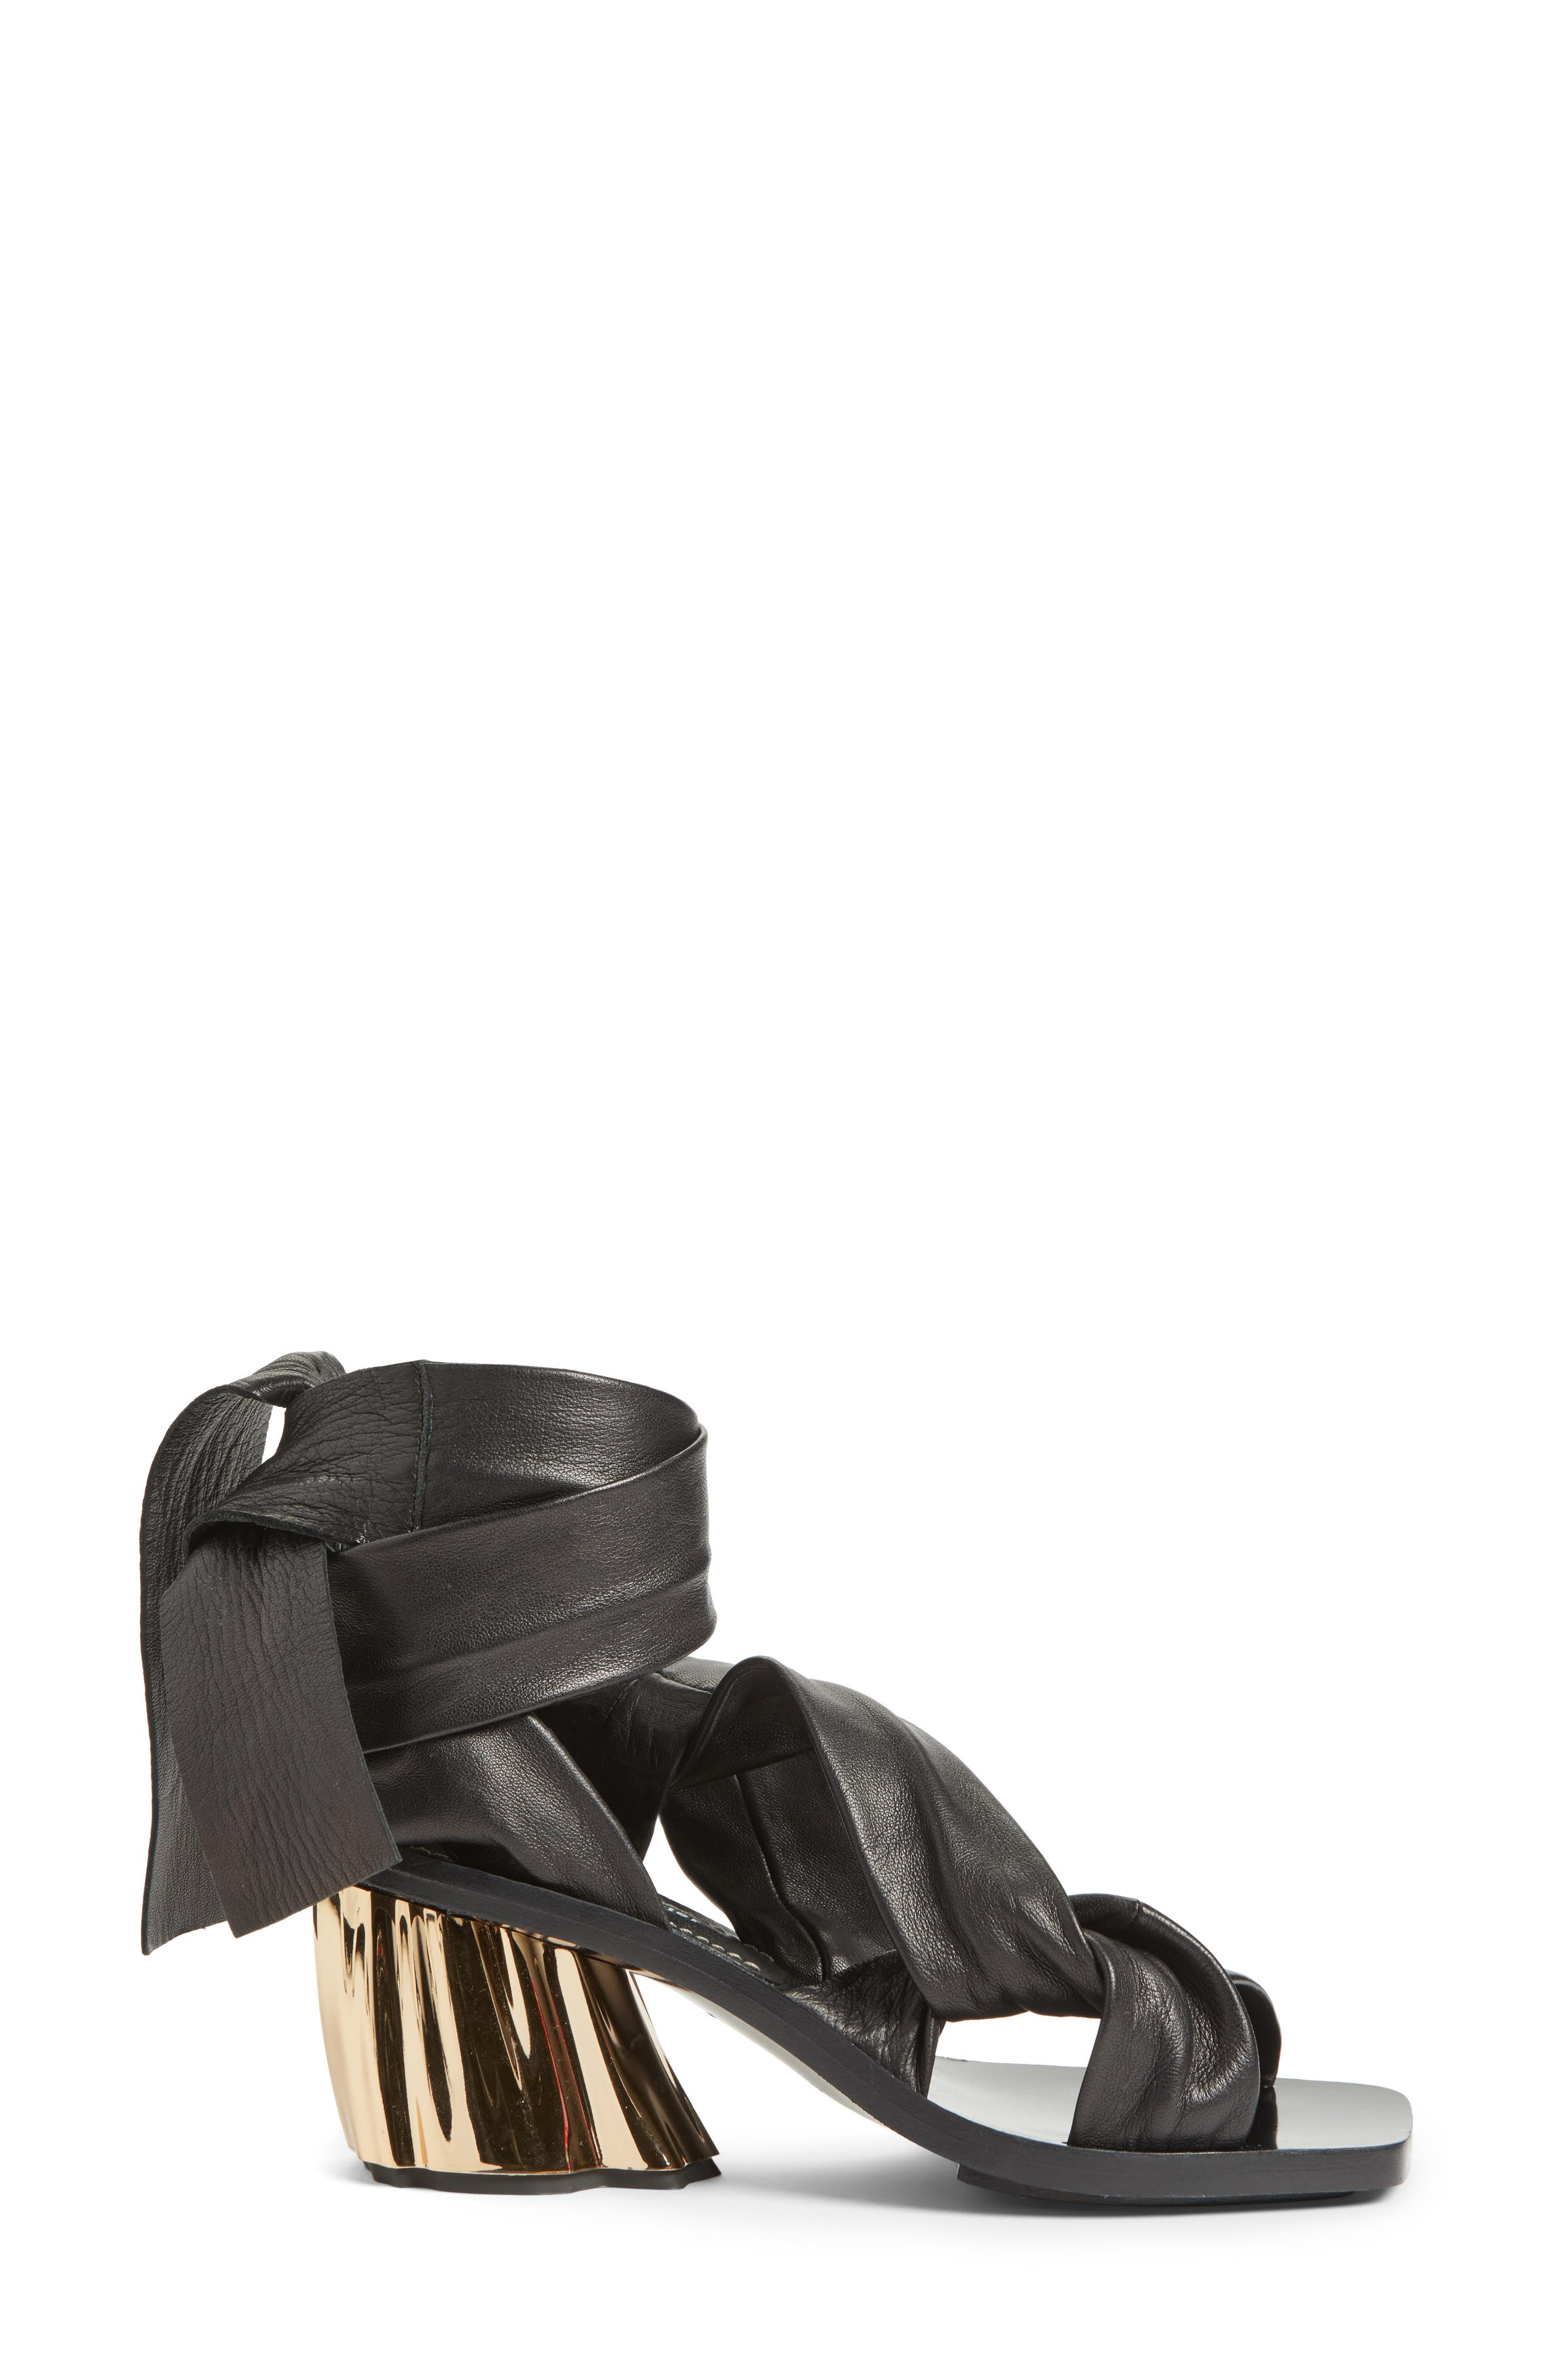 Alternate Image 3  - Proenza Schouler Ankle Wrap Sandal (Women)